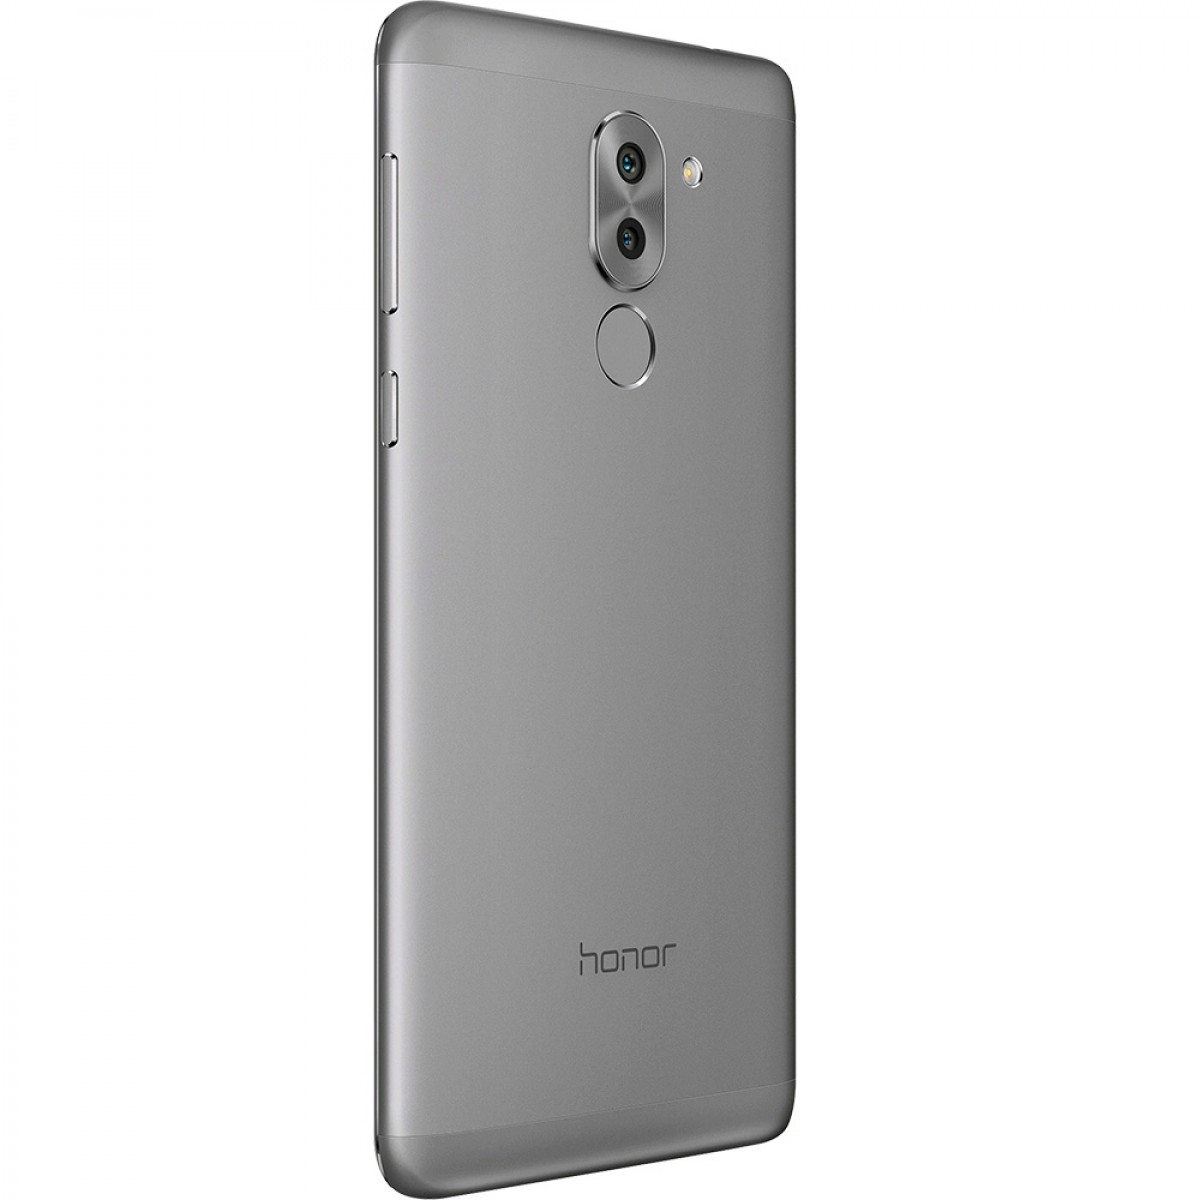 Huawei Honor 6X (64GB) LTE Dual - Grey MOBILE PHONES